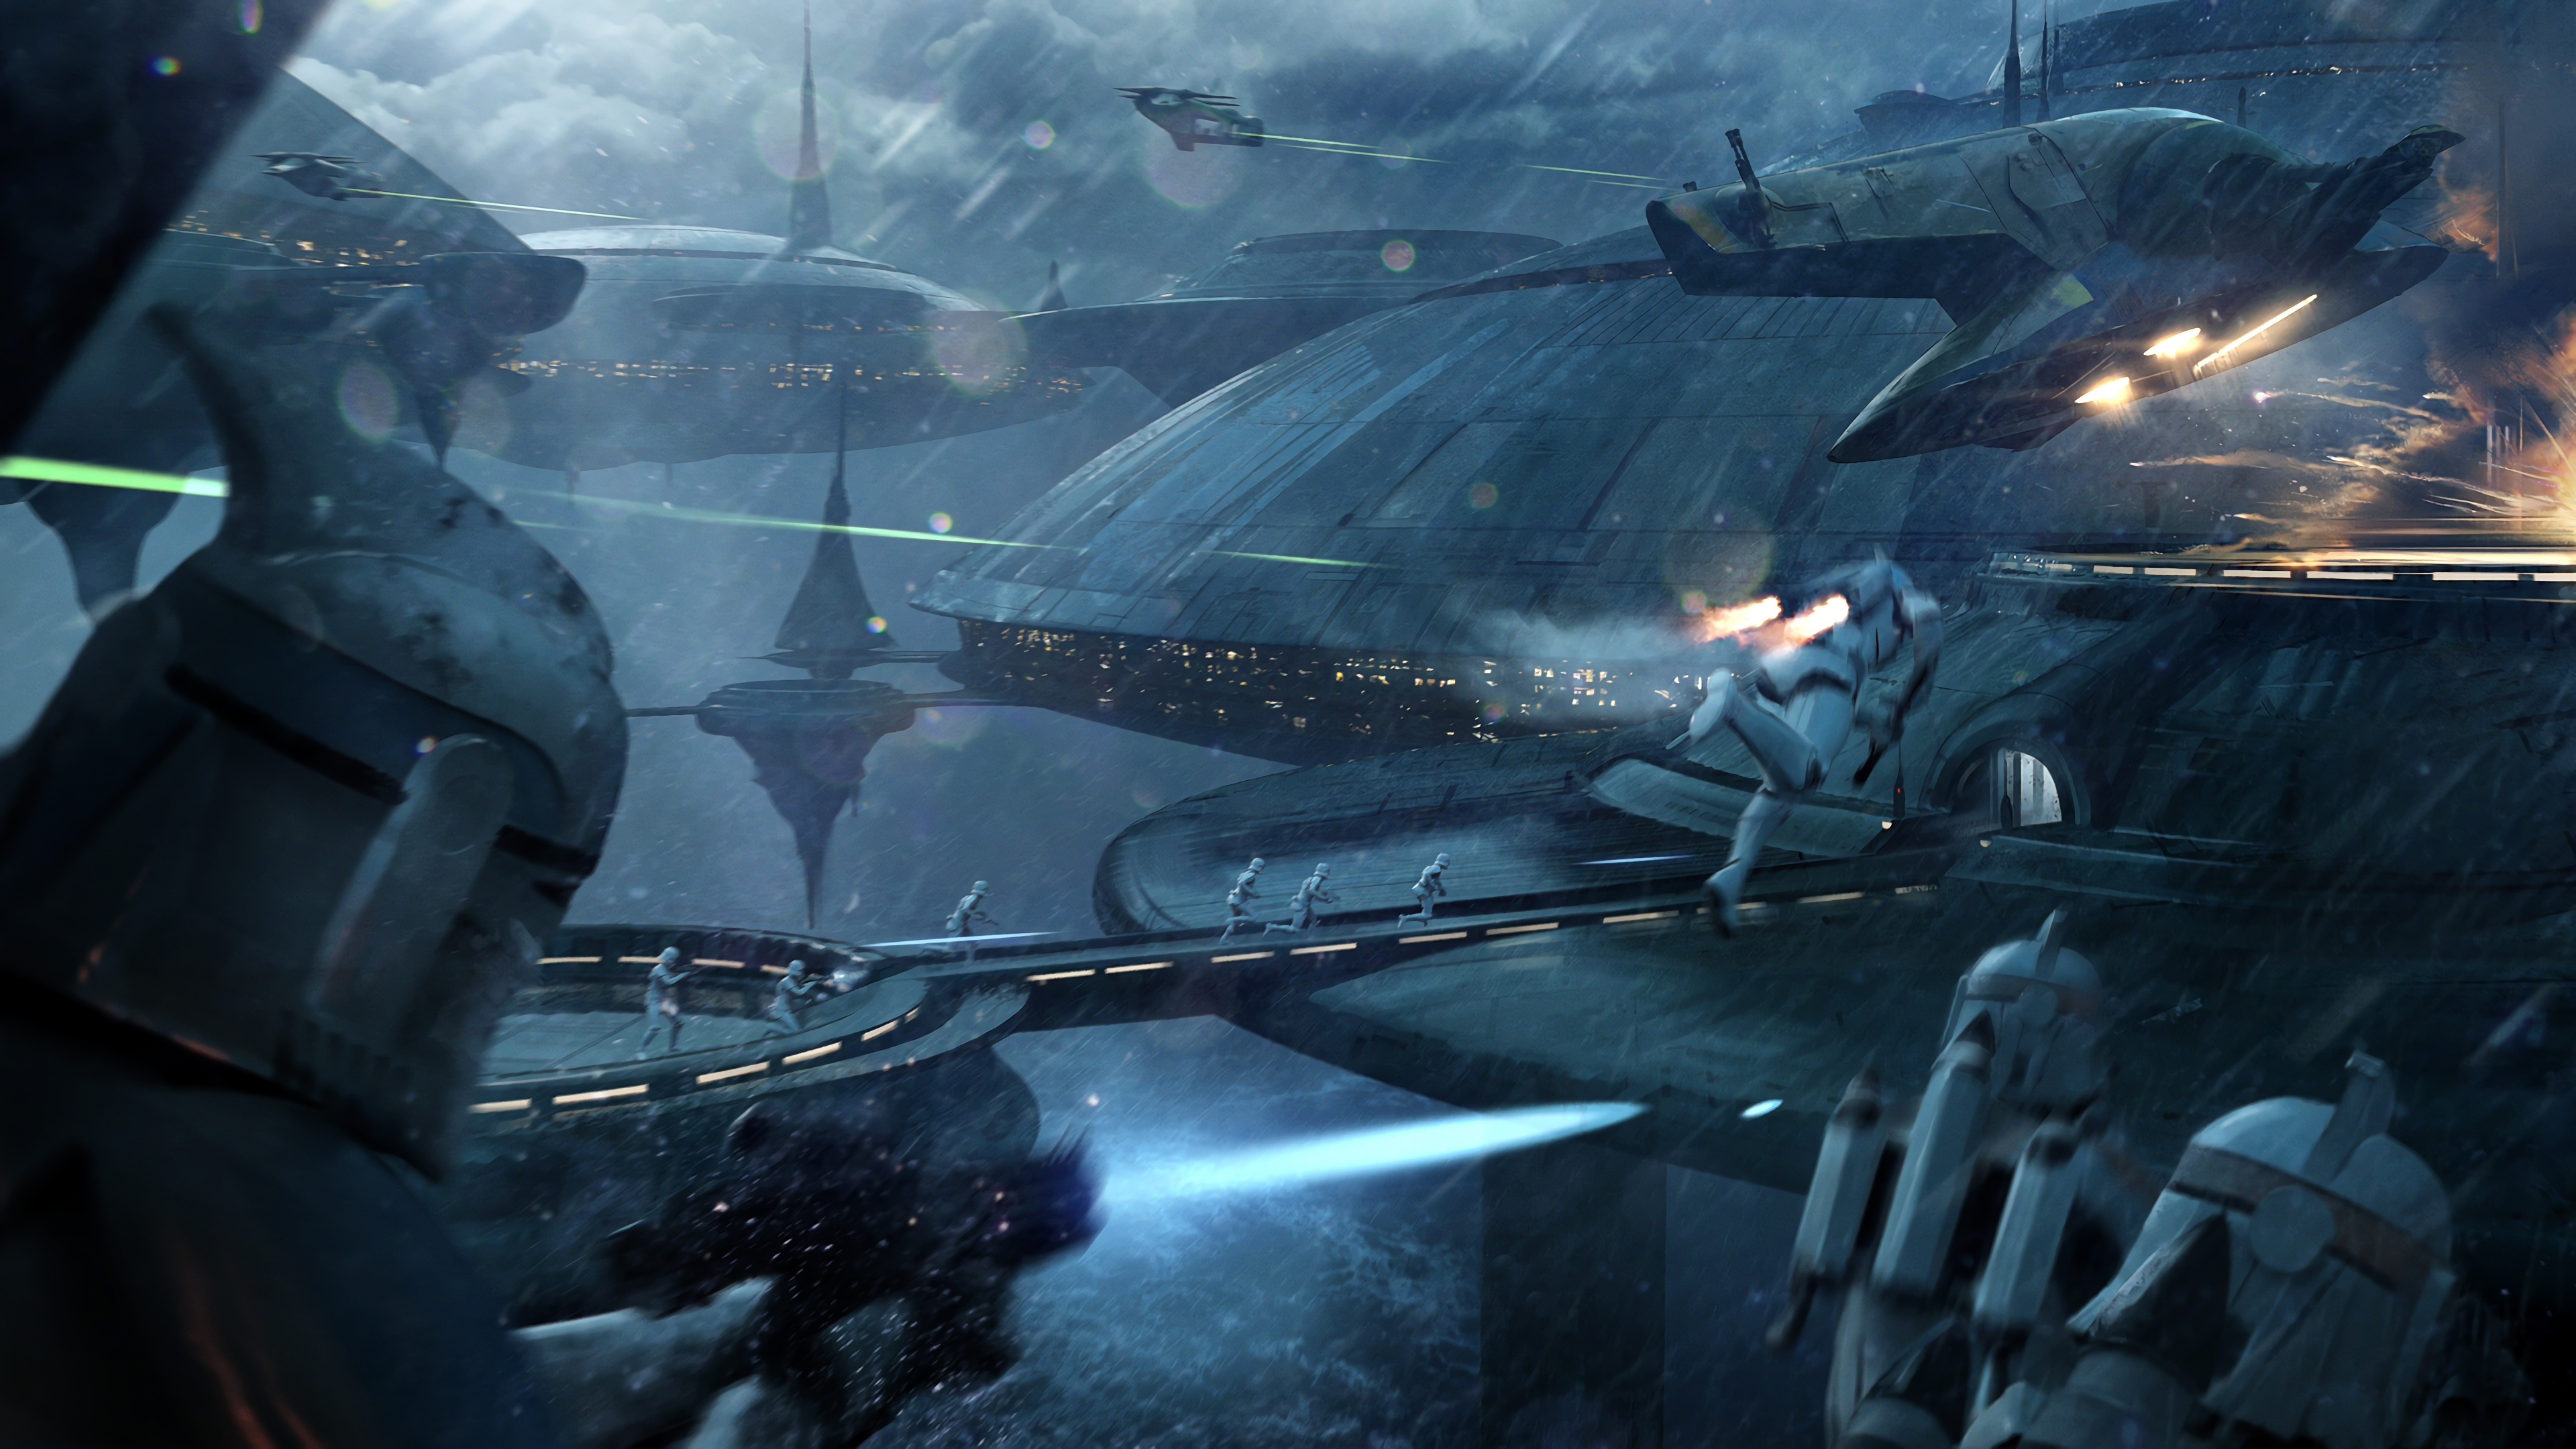 1swbattlefront Action Battlefront Fighting Futuristic Sci Fi Shooter Star Wars Wallpaper 3840x2160 1232863 Wallpaperup